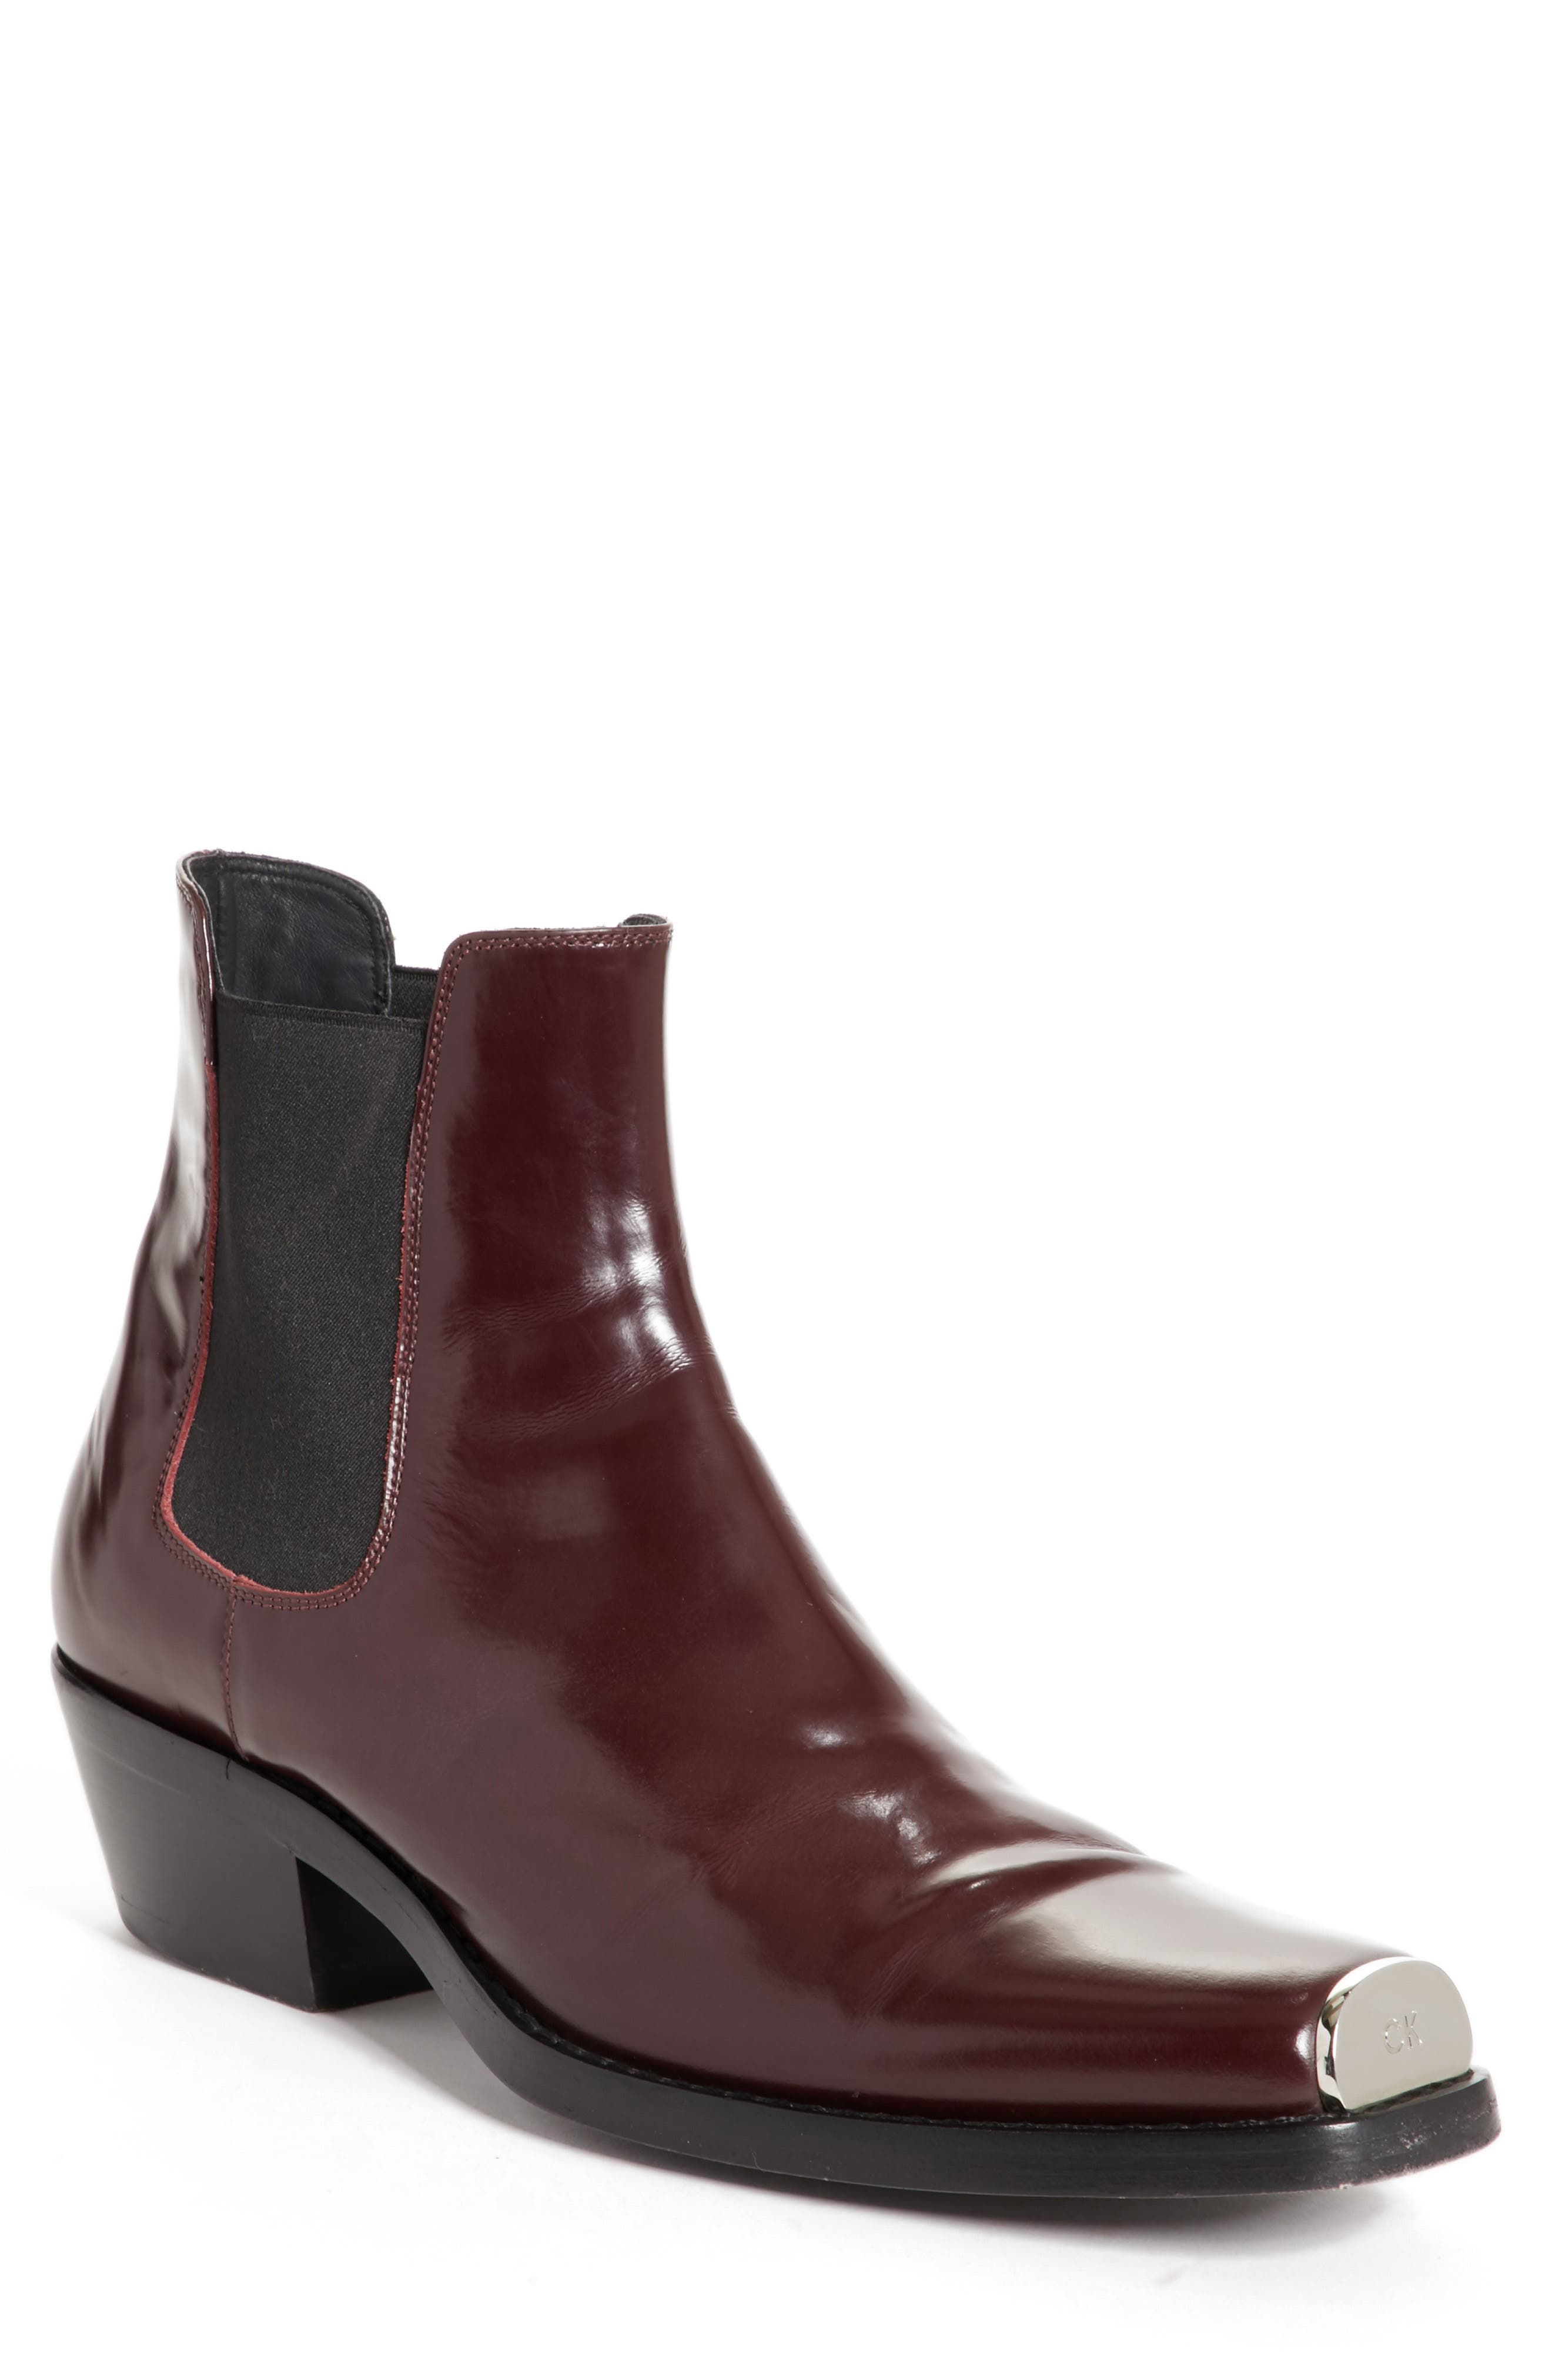 Chris Western Metal Tip Boot,                         Main,                         color, Bordeaux Leather